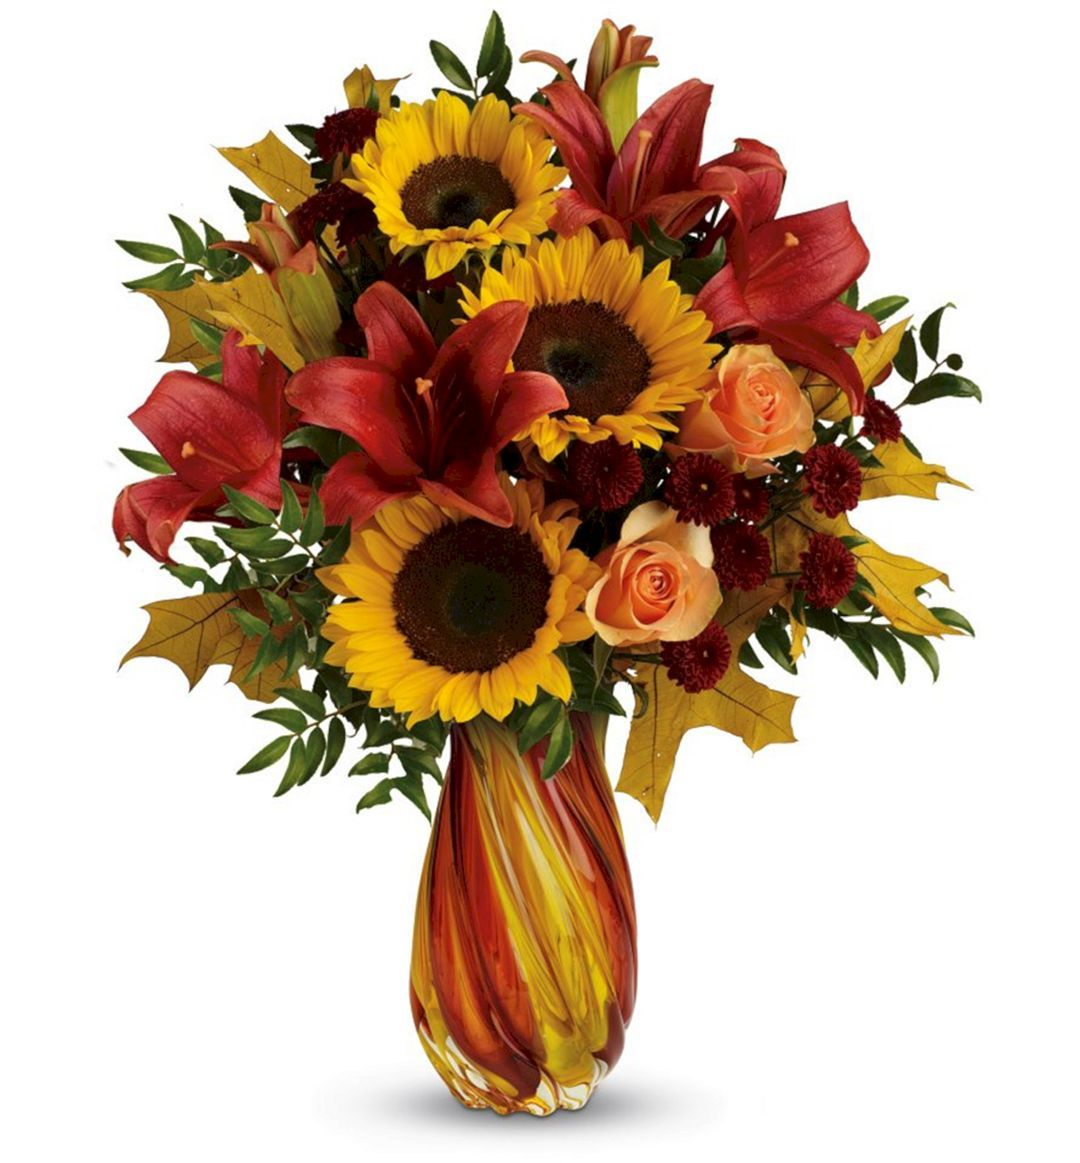 50+ Beautiful Fall Wedding Bouquets With Sunflowers Ideas